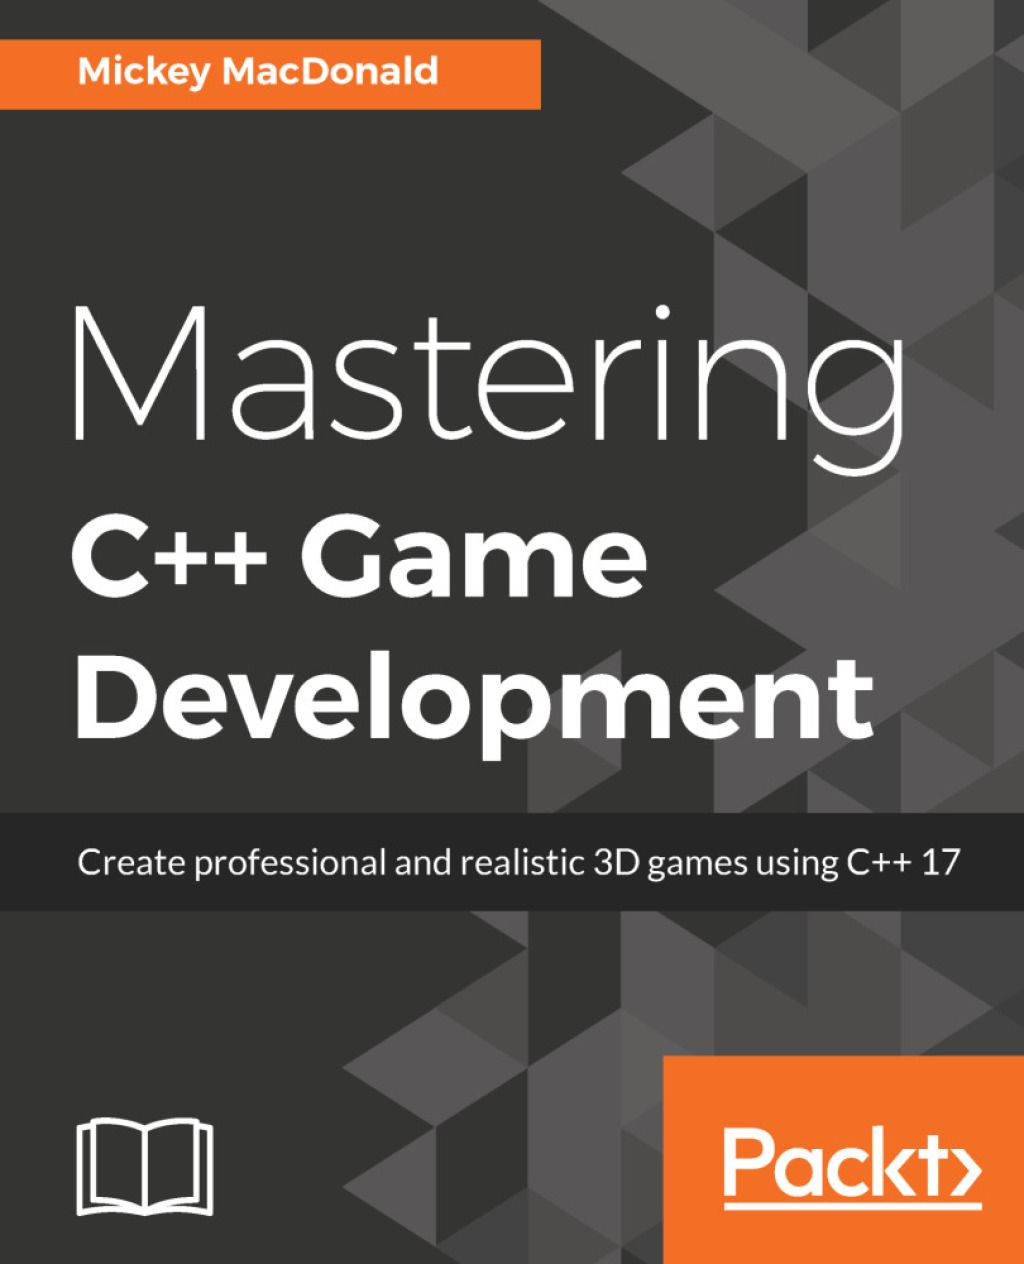 Mastering C++ Game Development (eBook) (With images